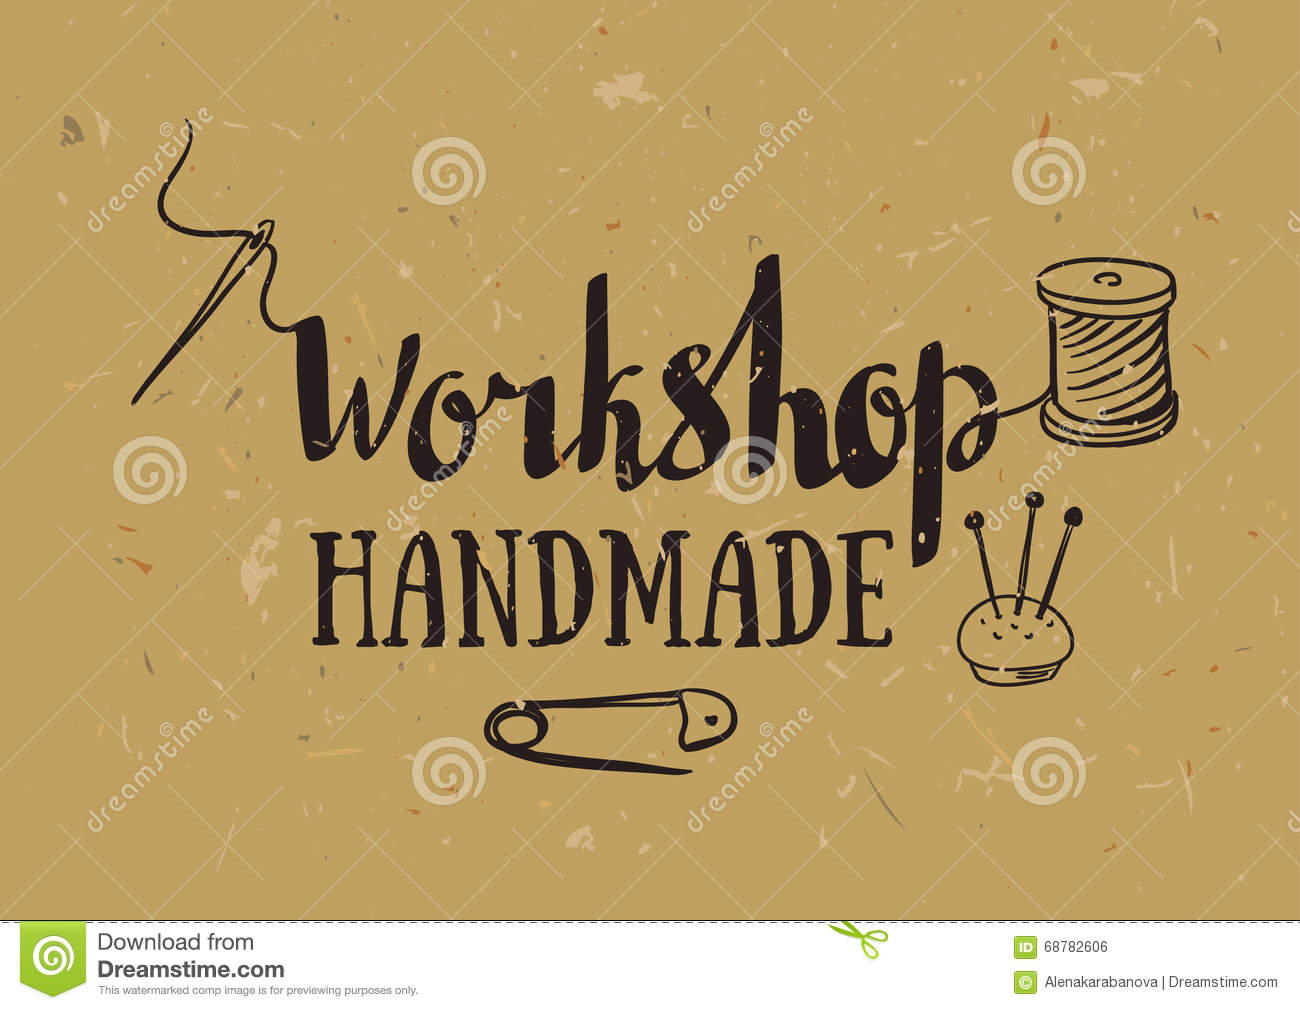 Poster design handmade - Hand Drawn Typography Poster With Dressmaking Accessories And Stylish Lettering Workshop Handmade